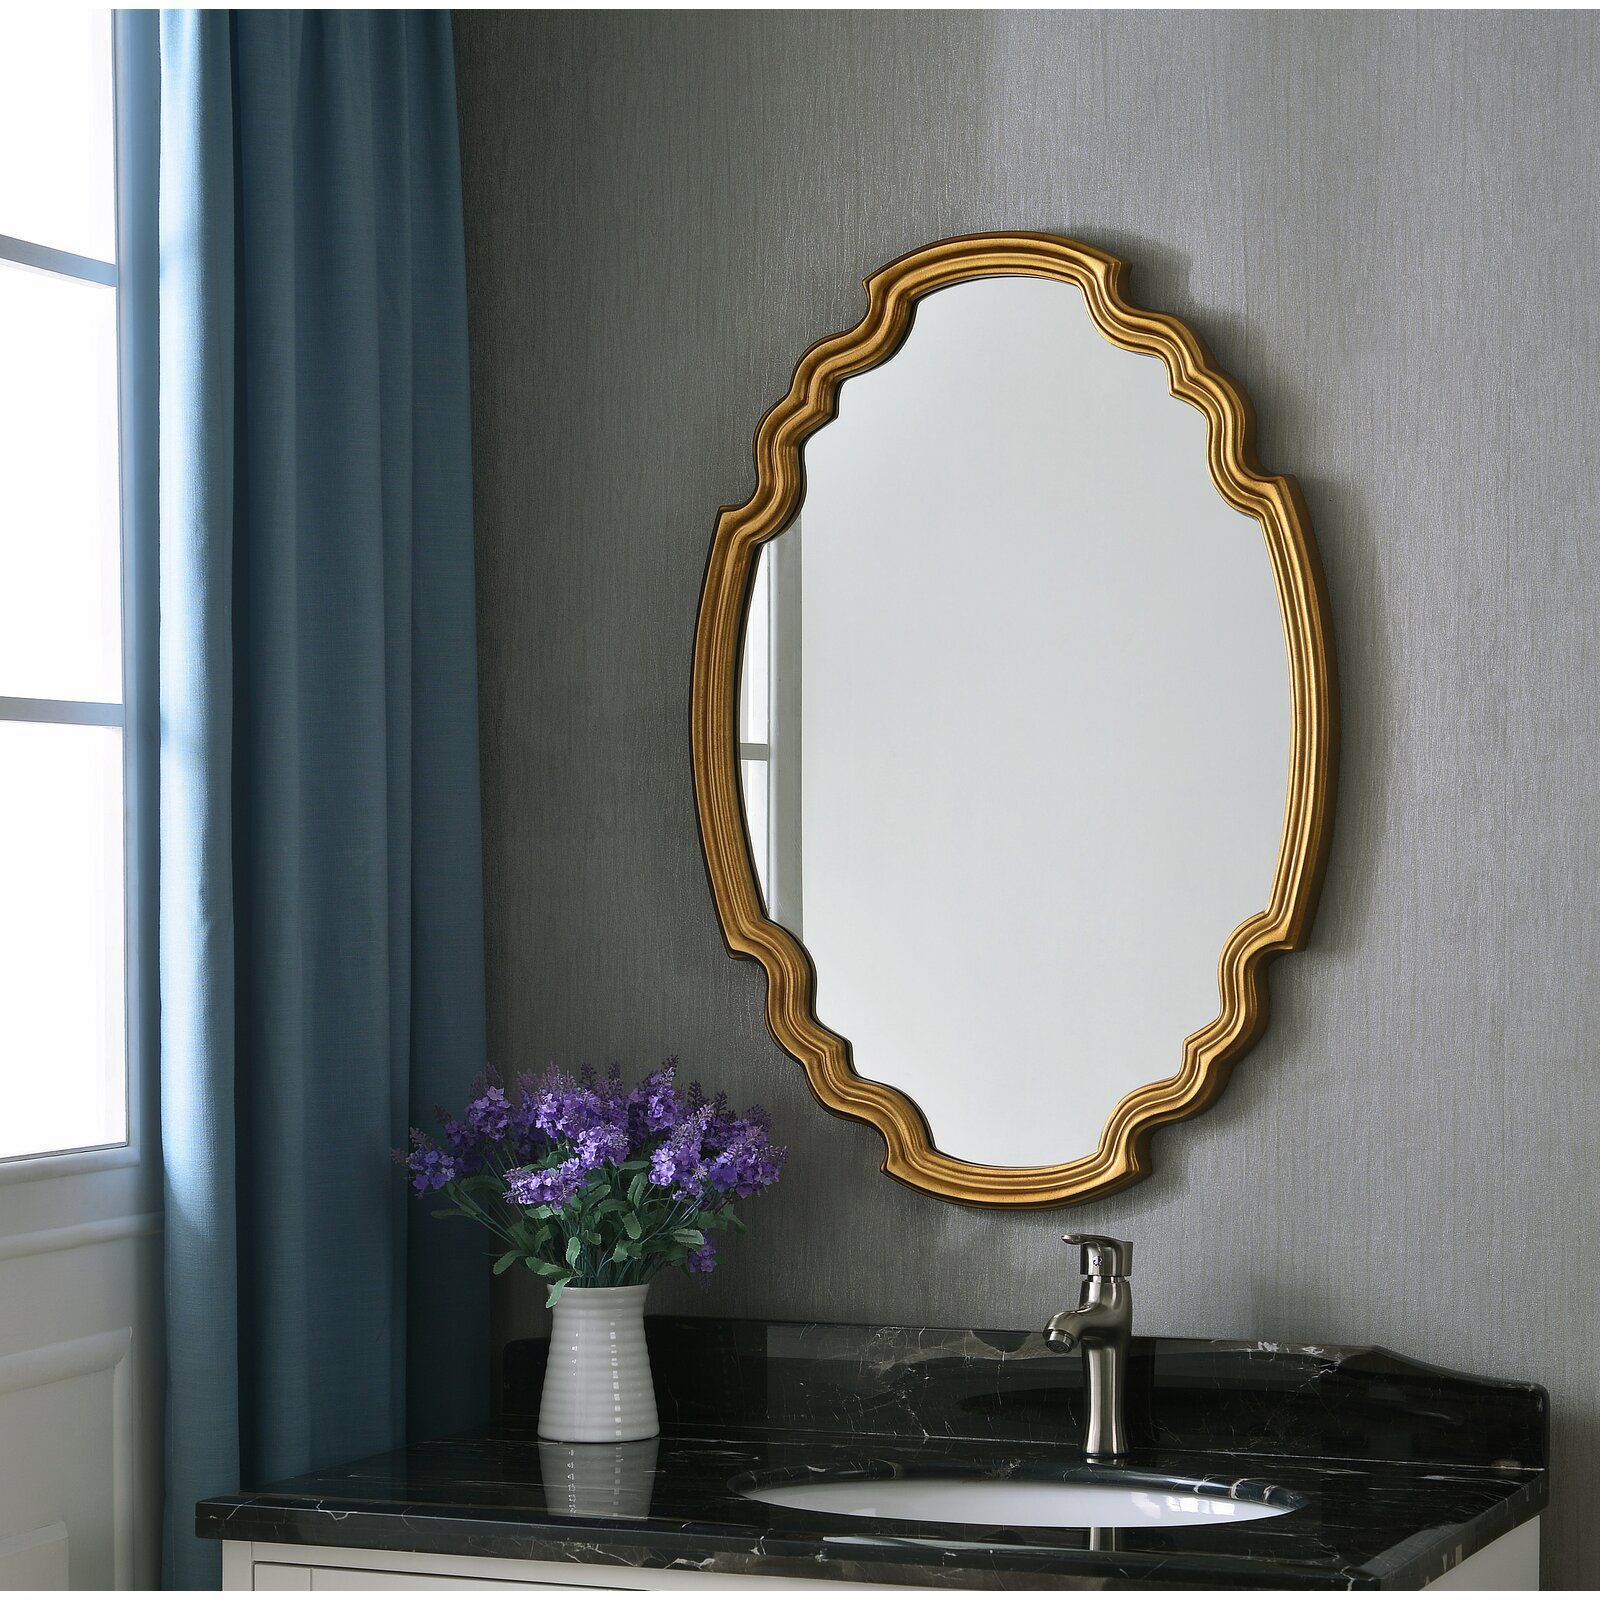 Halette Glam Accent Wall Mirror  Mirror wall, Accent wall, Gold